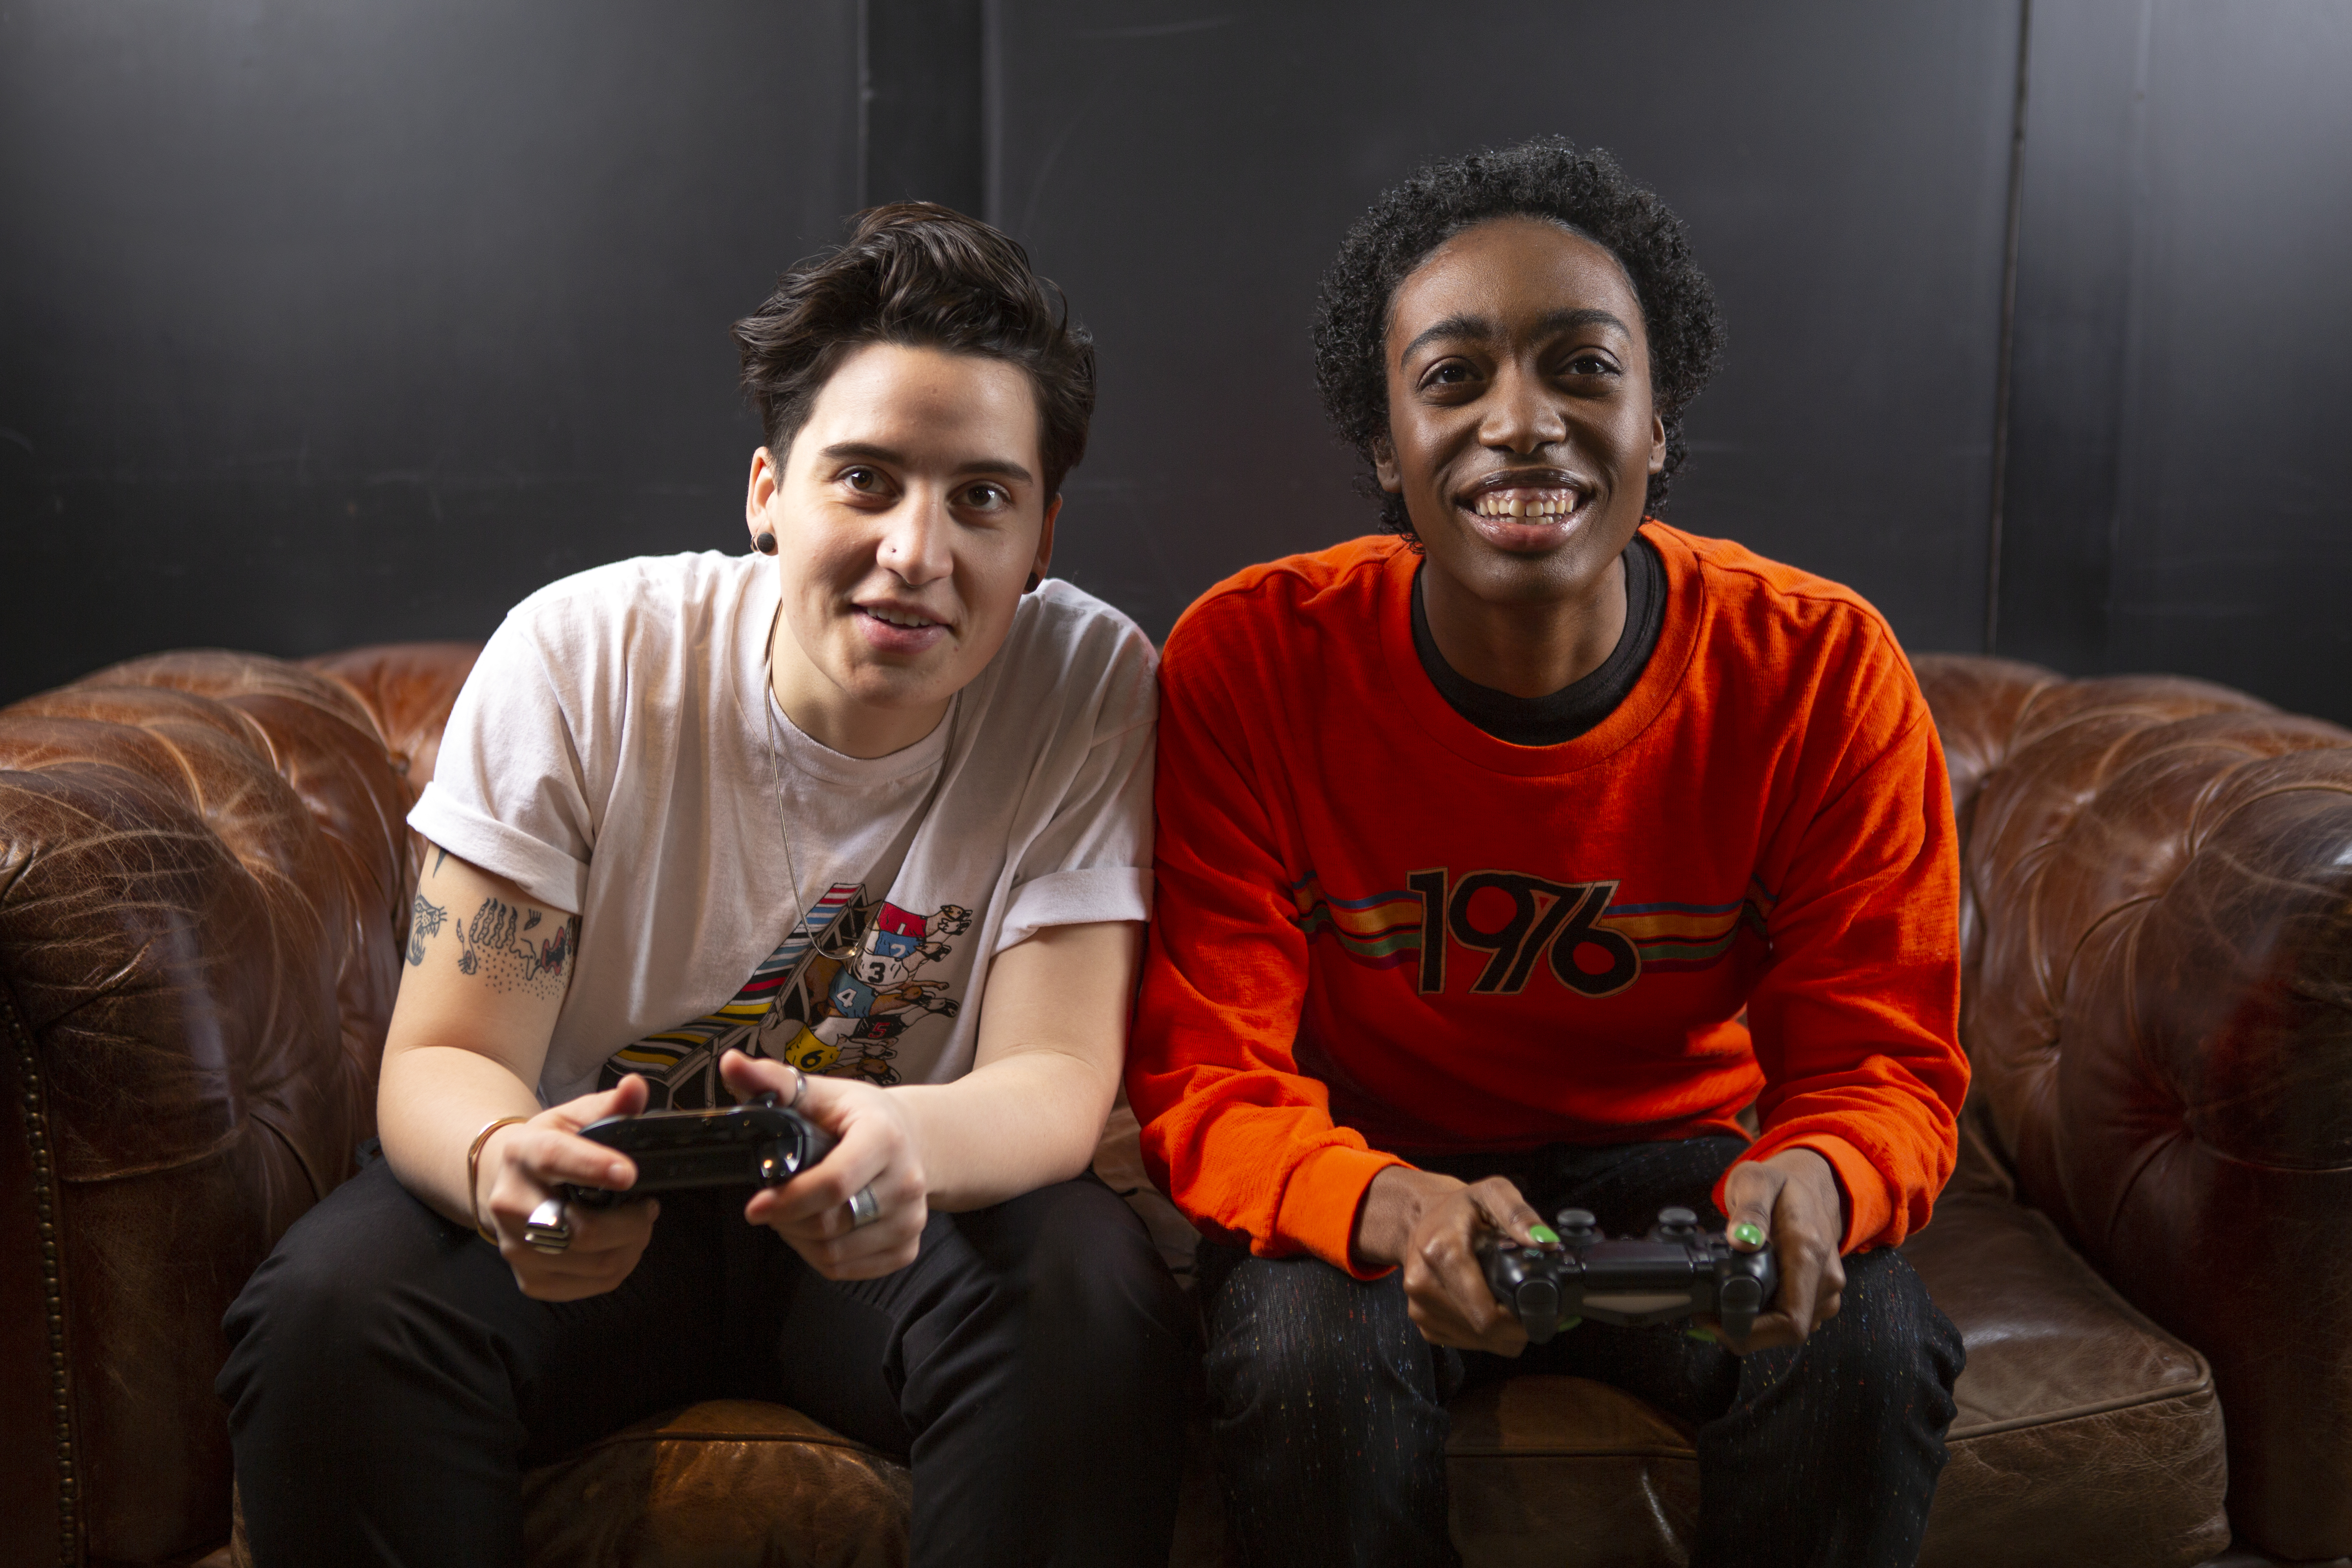 Two non-binary friends playing video games laughing